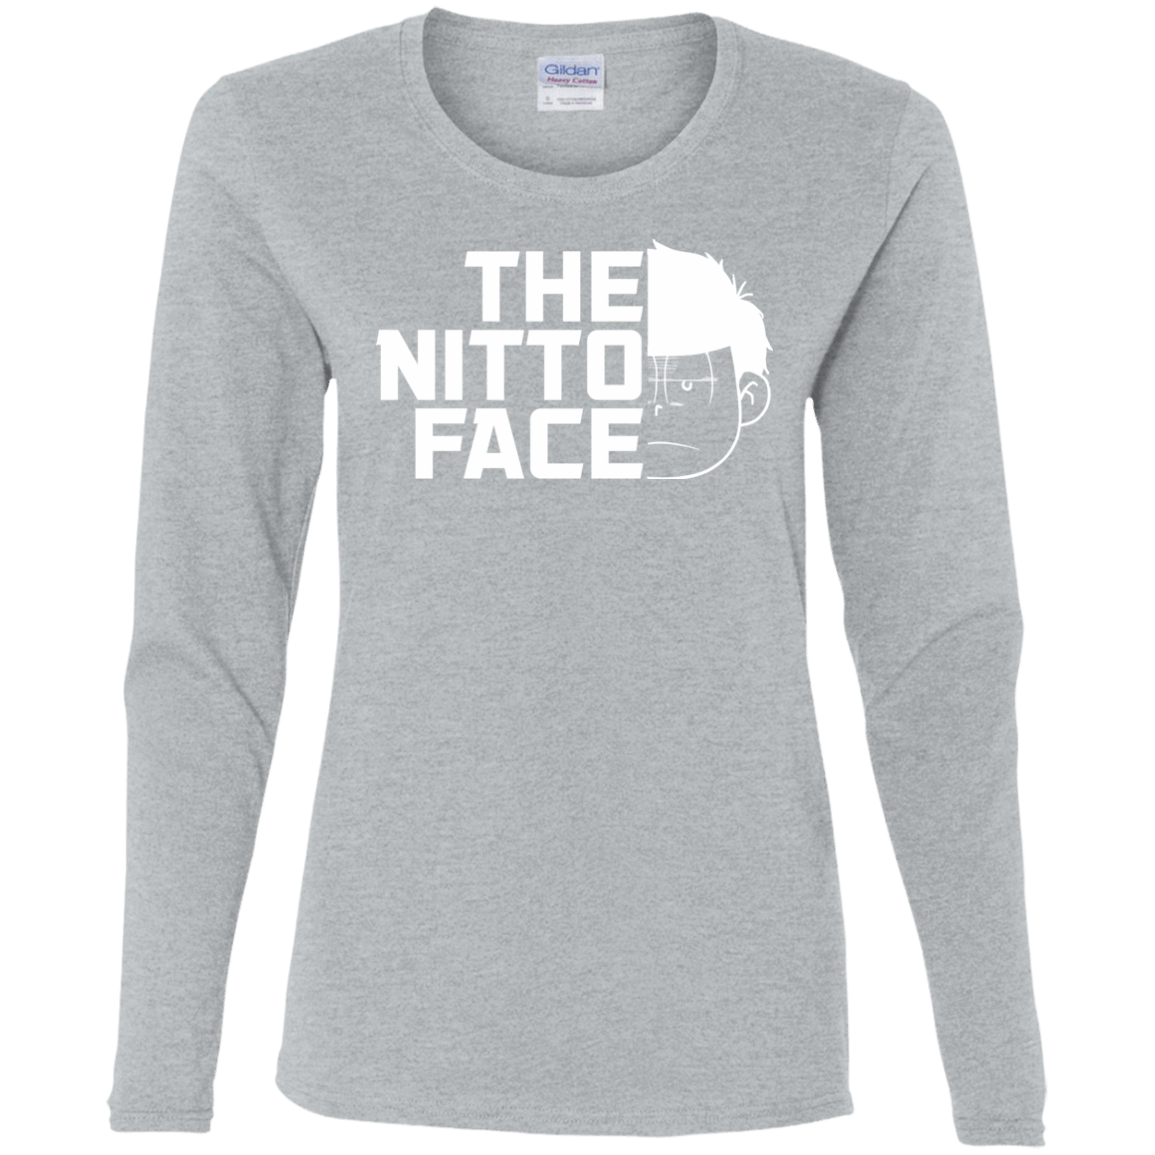 T-Shirts Sport Grey / S The Nitto Face Women's Long Sleeve T-Shirt